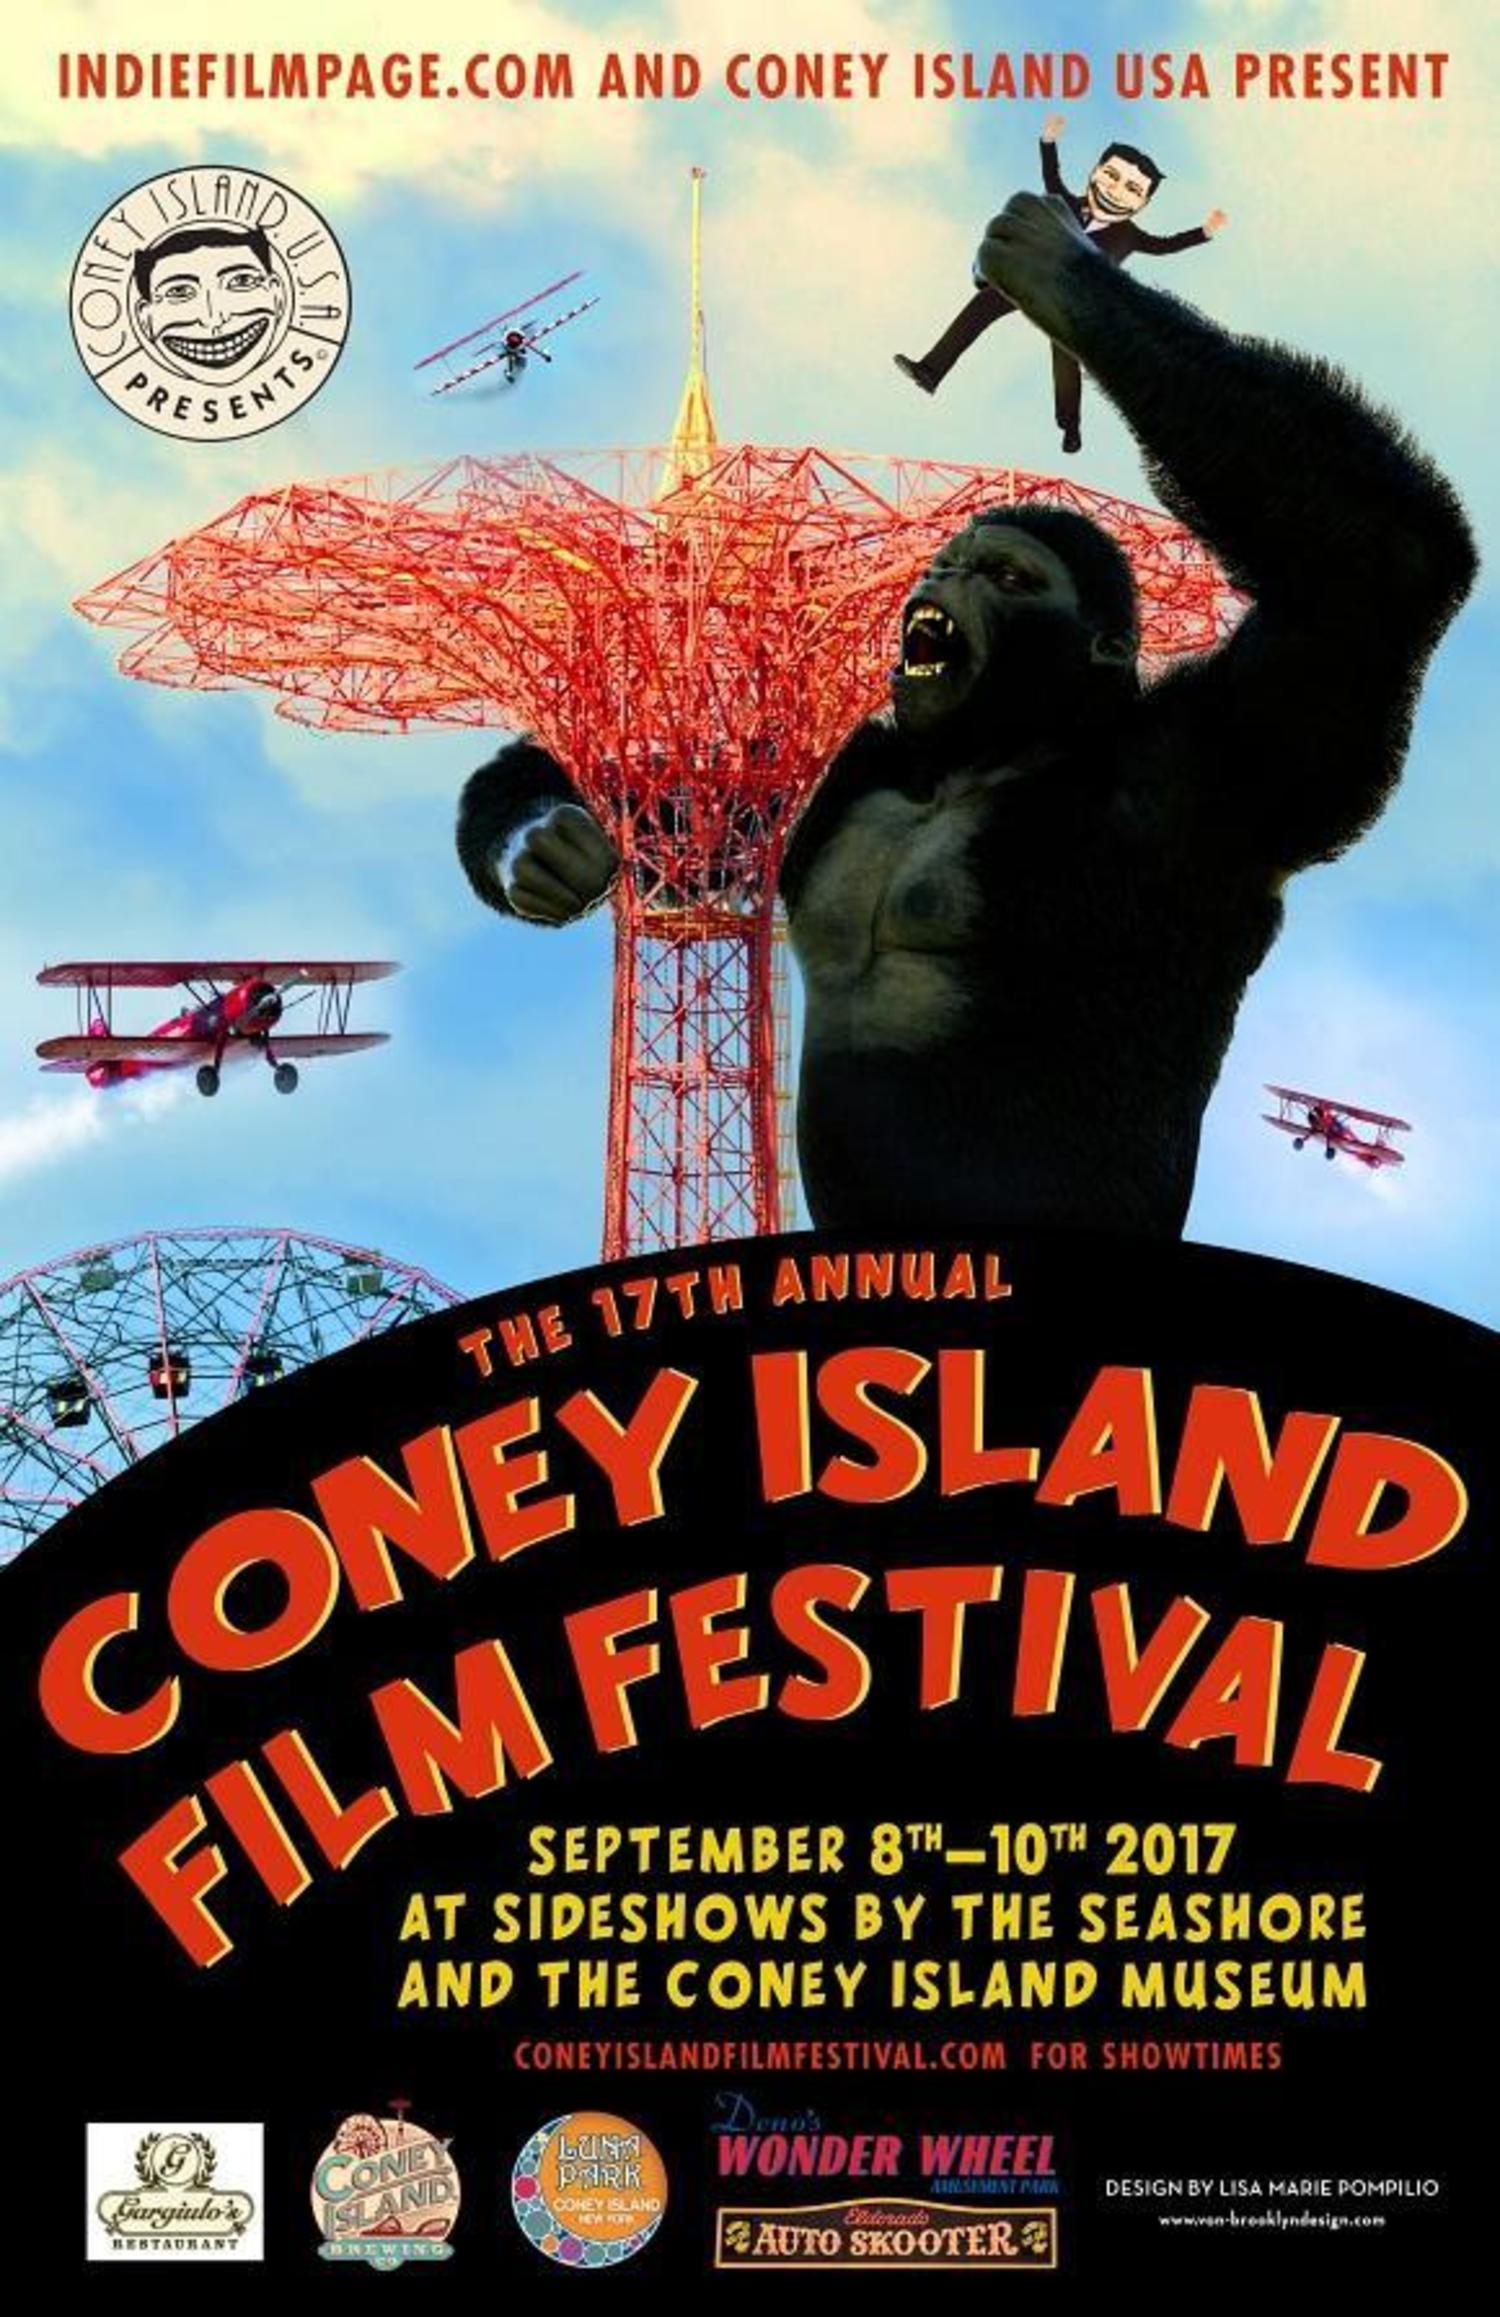 17th Annual Coney Island Film Festival. September 8th - 10th, 2017